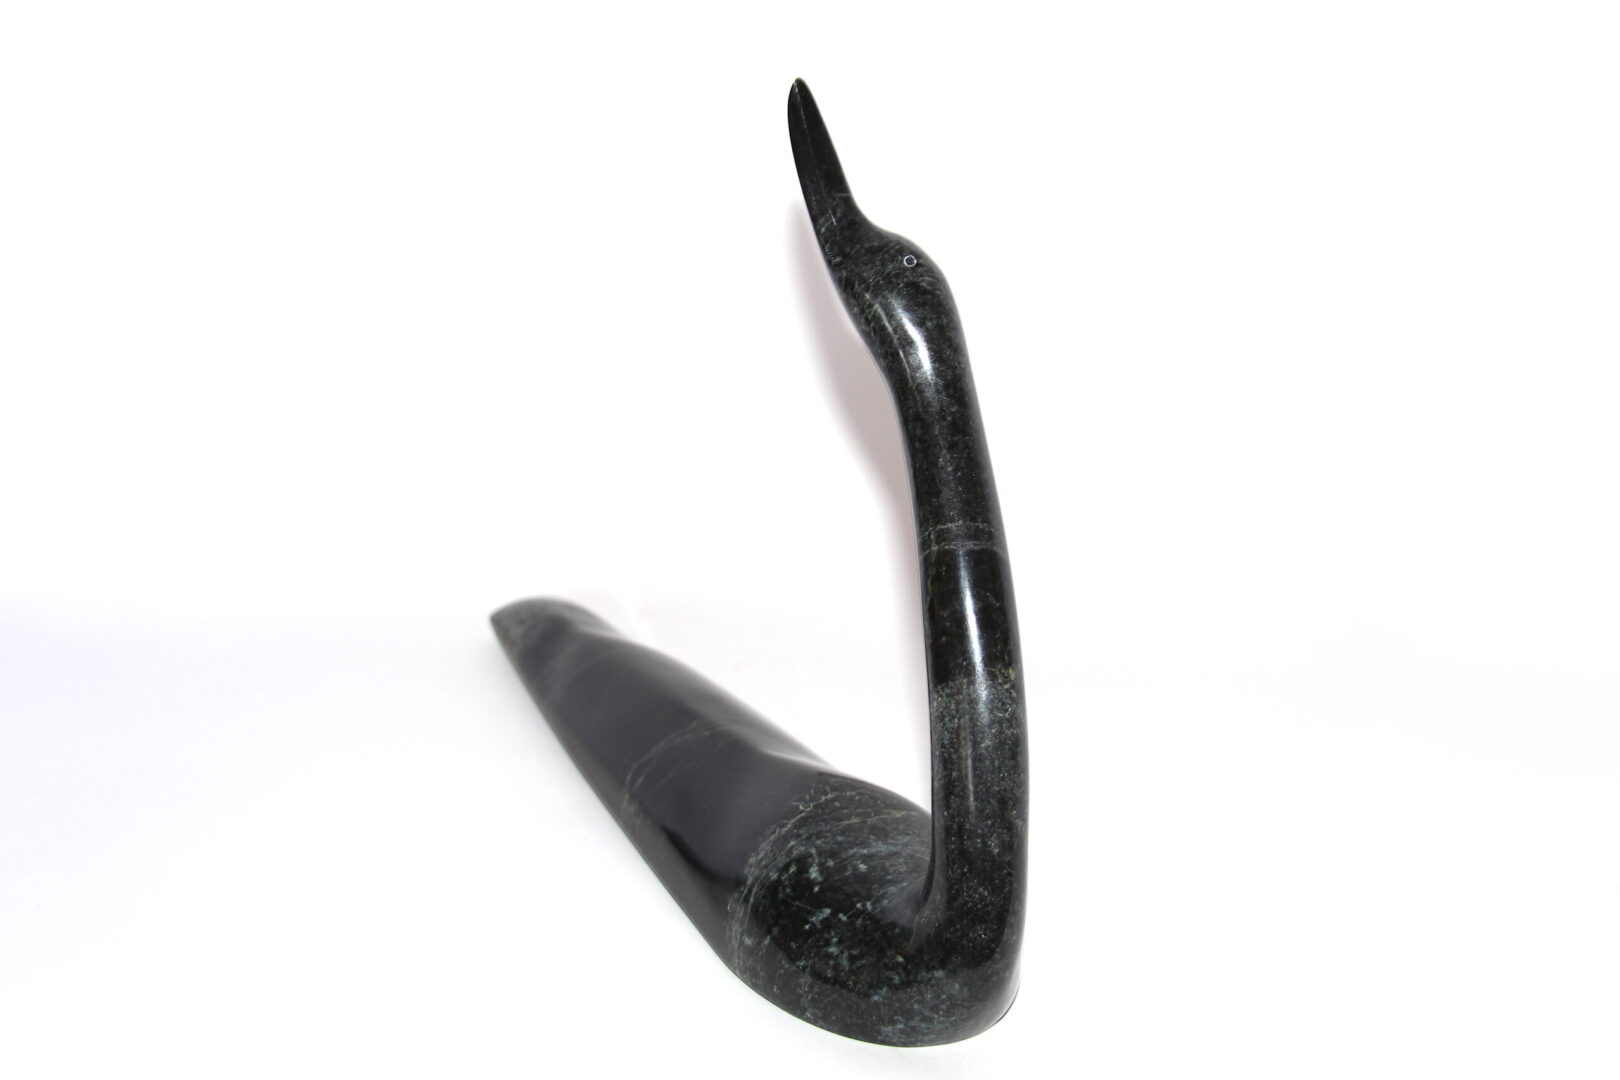 loon Inuit Art Sculpture in Serpentine